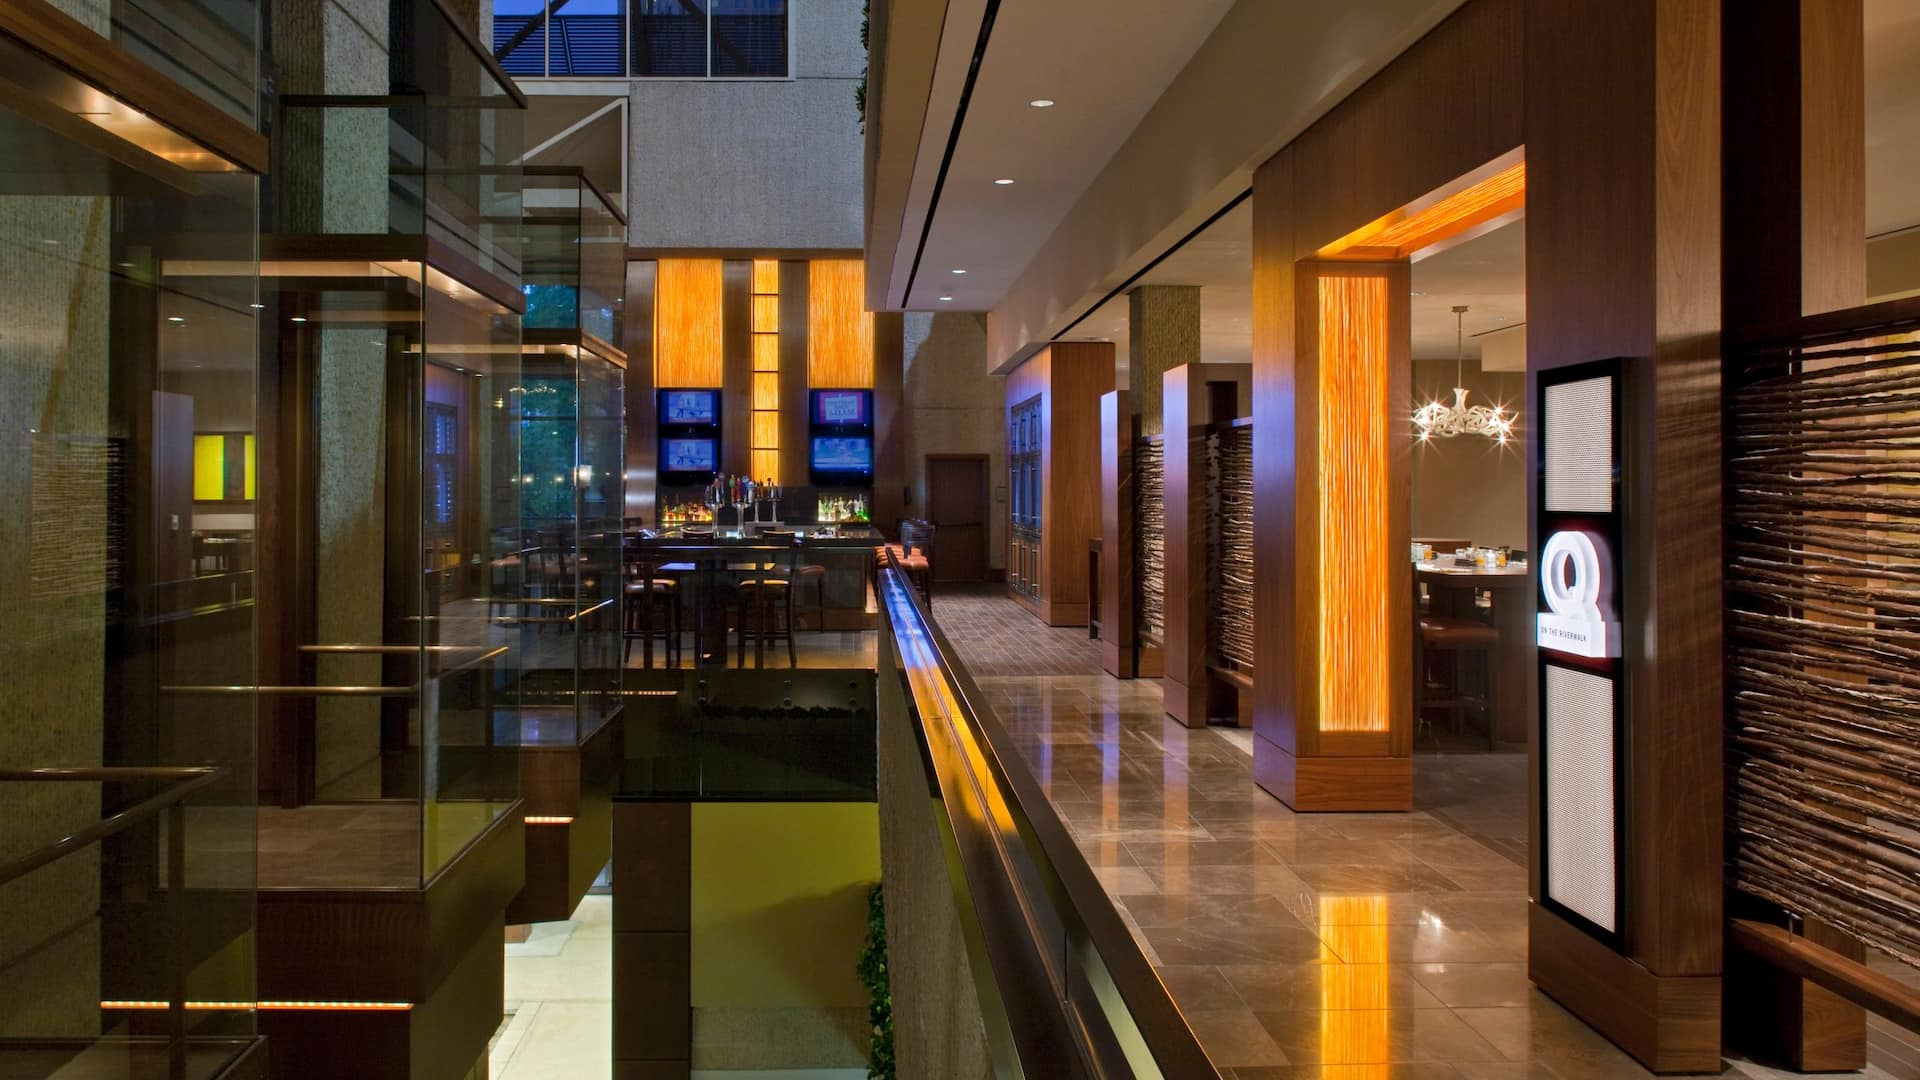 Dining Q Kitchen Entrance Hyatt Regency San Antonio near The Alamo